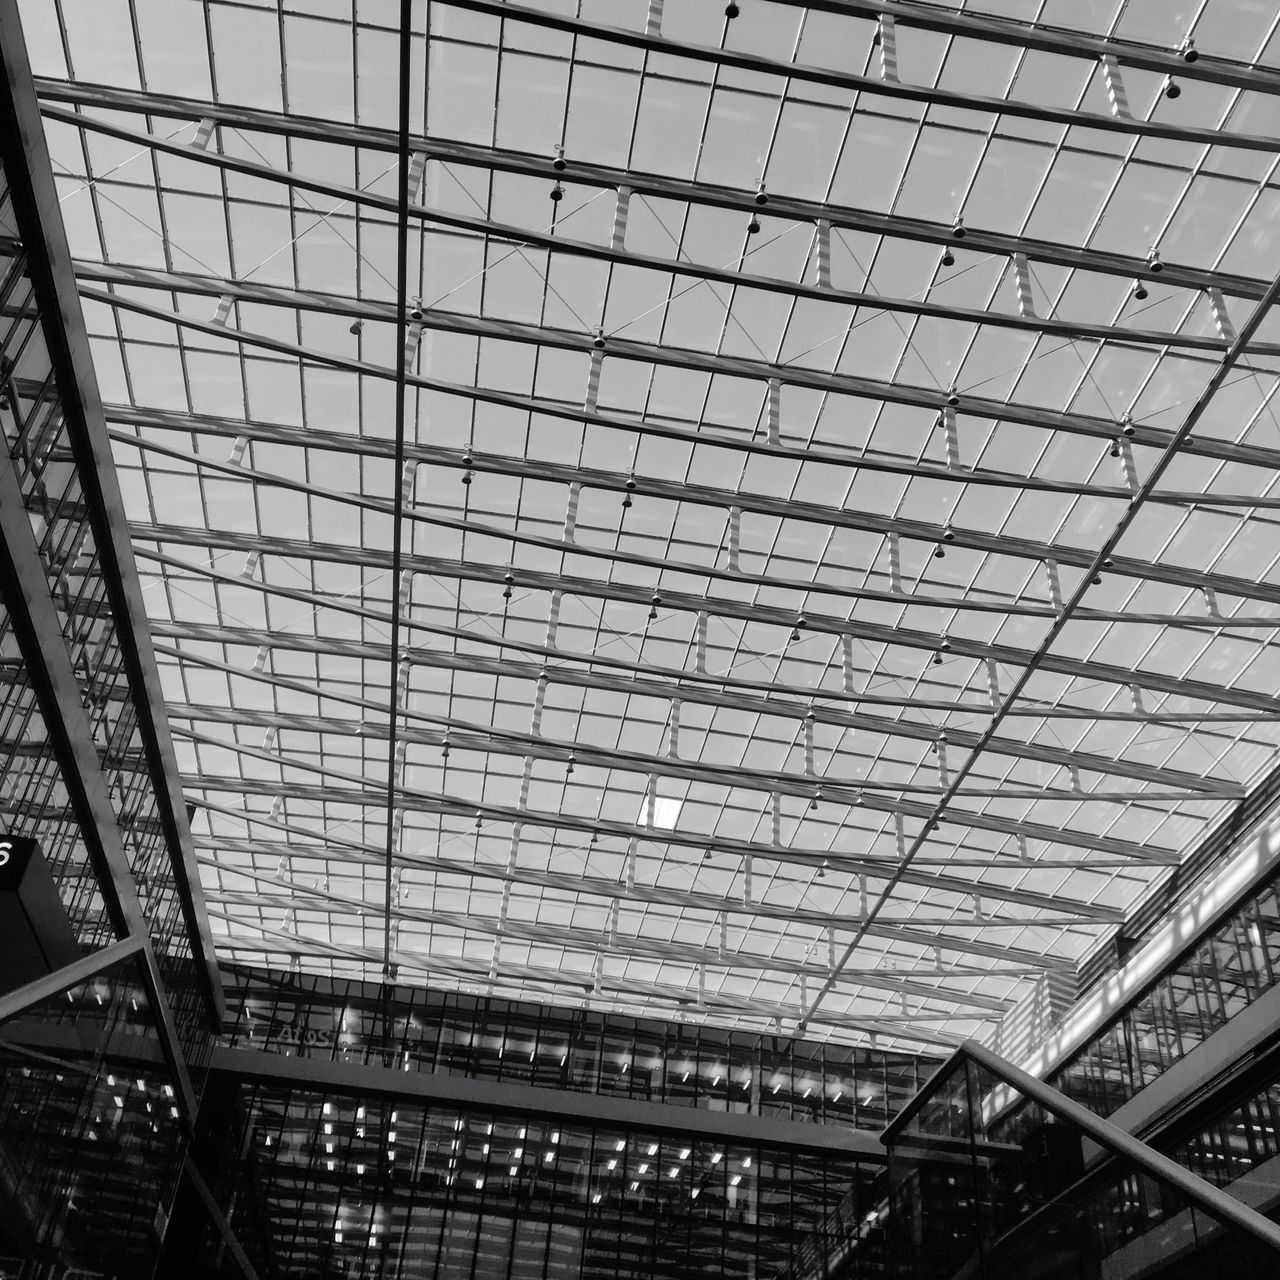 Architecture Built Structure Ceiling Low Angle View Indoors  Modern Building Atrium Glass Glass - Material Frankfurt Am Main Squaire